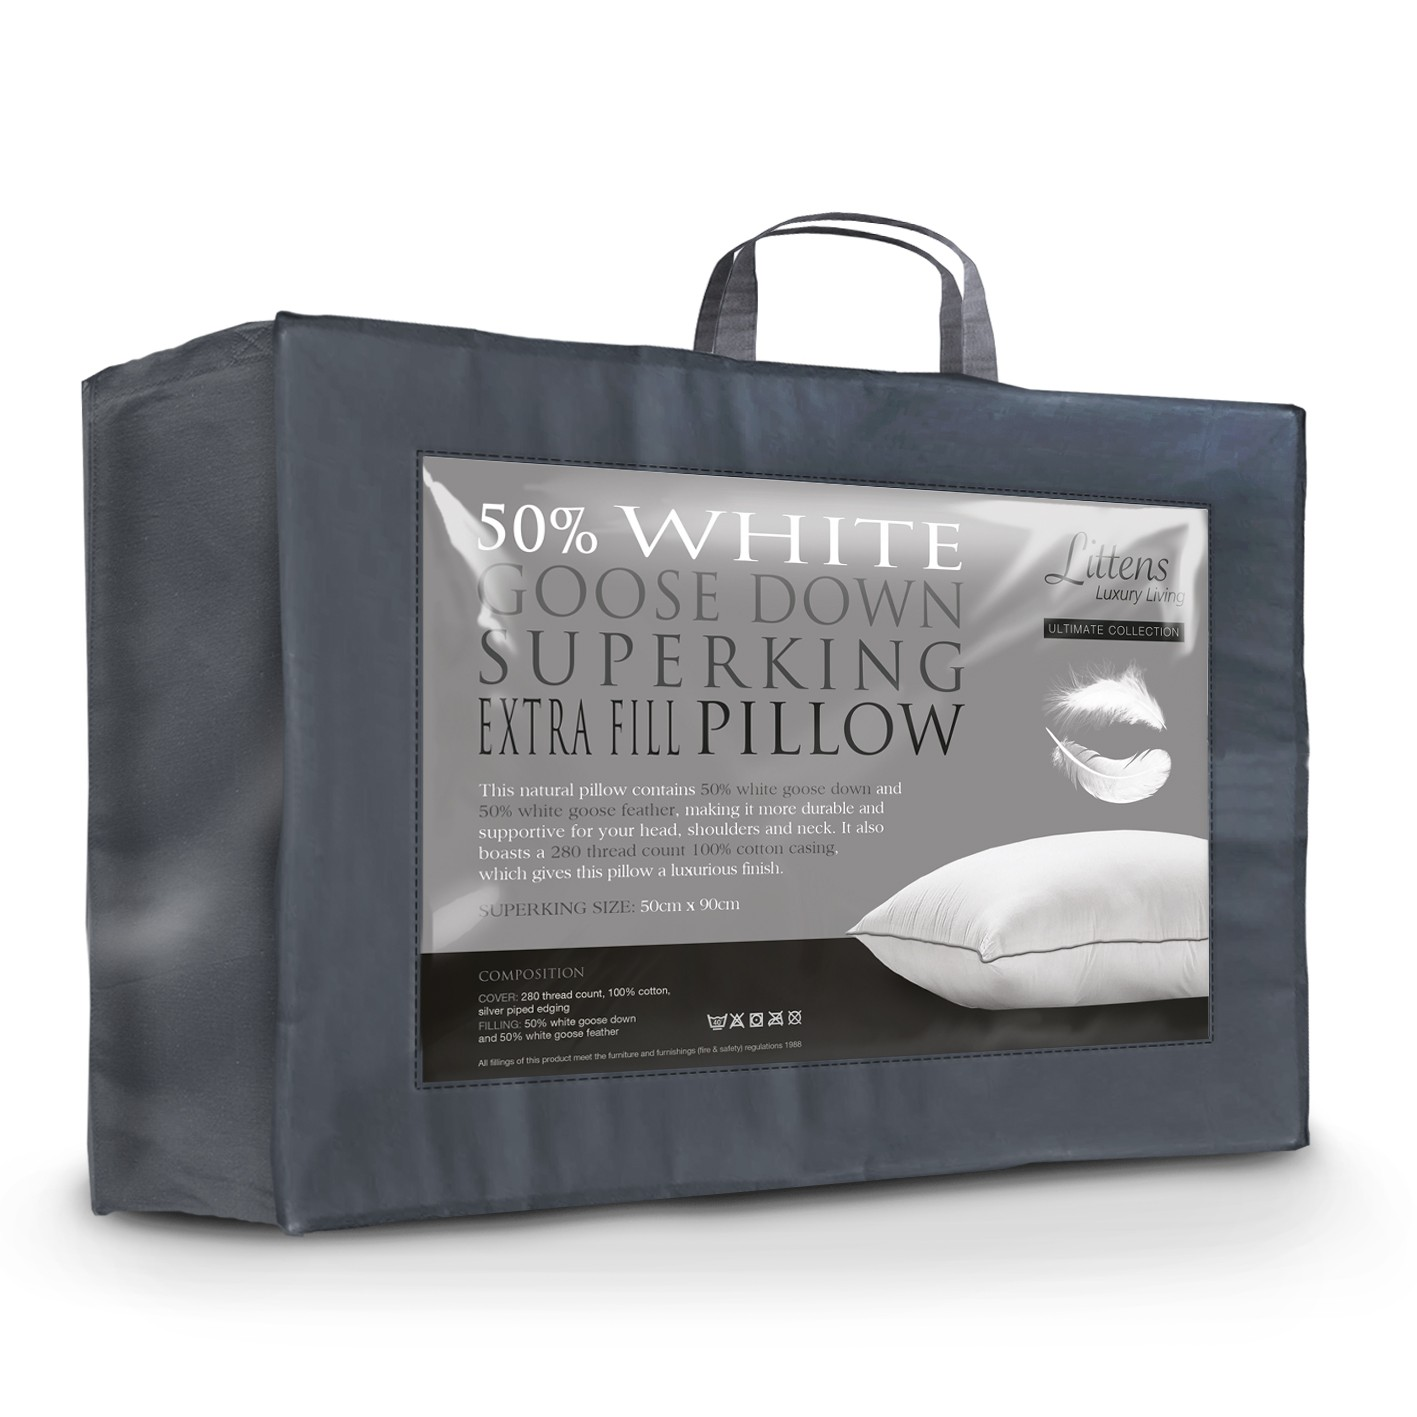 Superking Goose Down and Feather Pillow